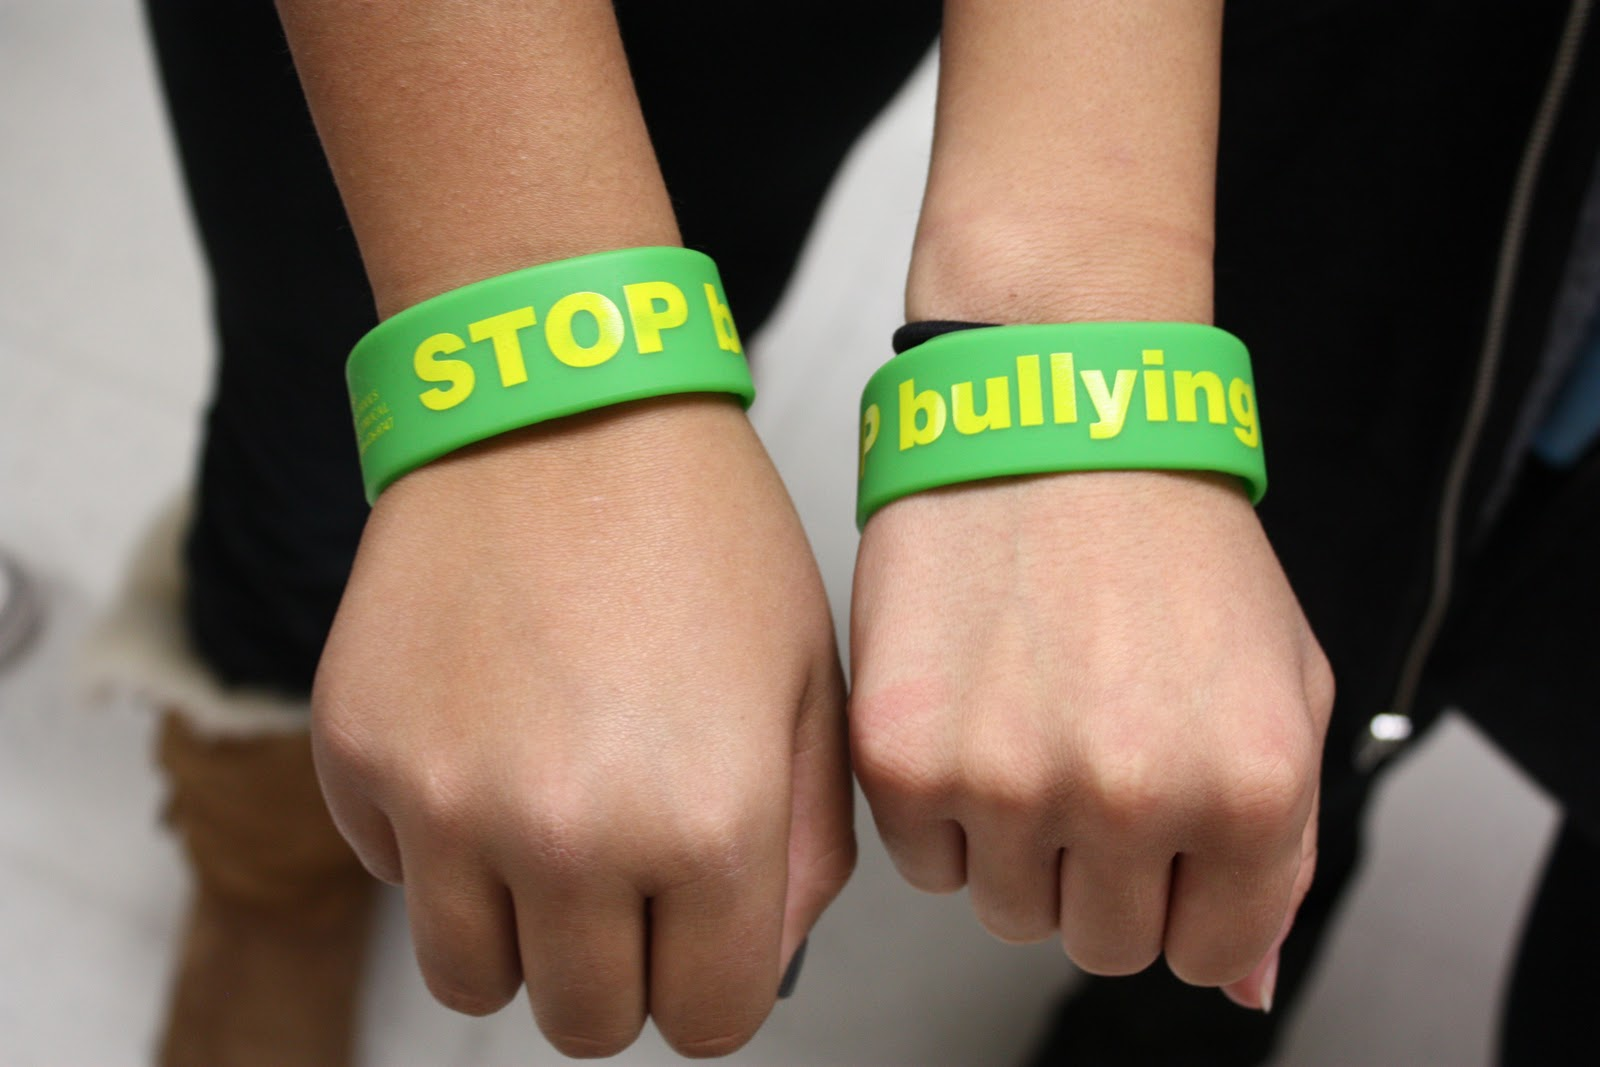 against bracelet debossed set bully silicone anti bhp ebay wristbands band bullying